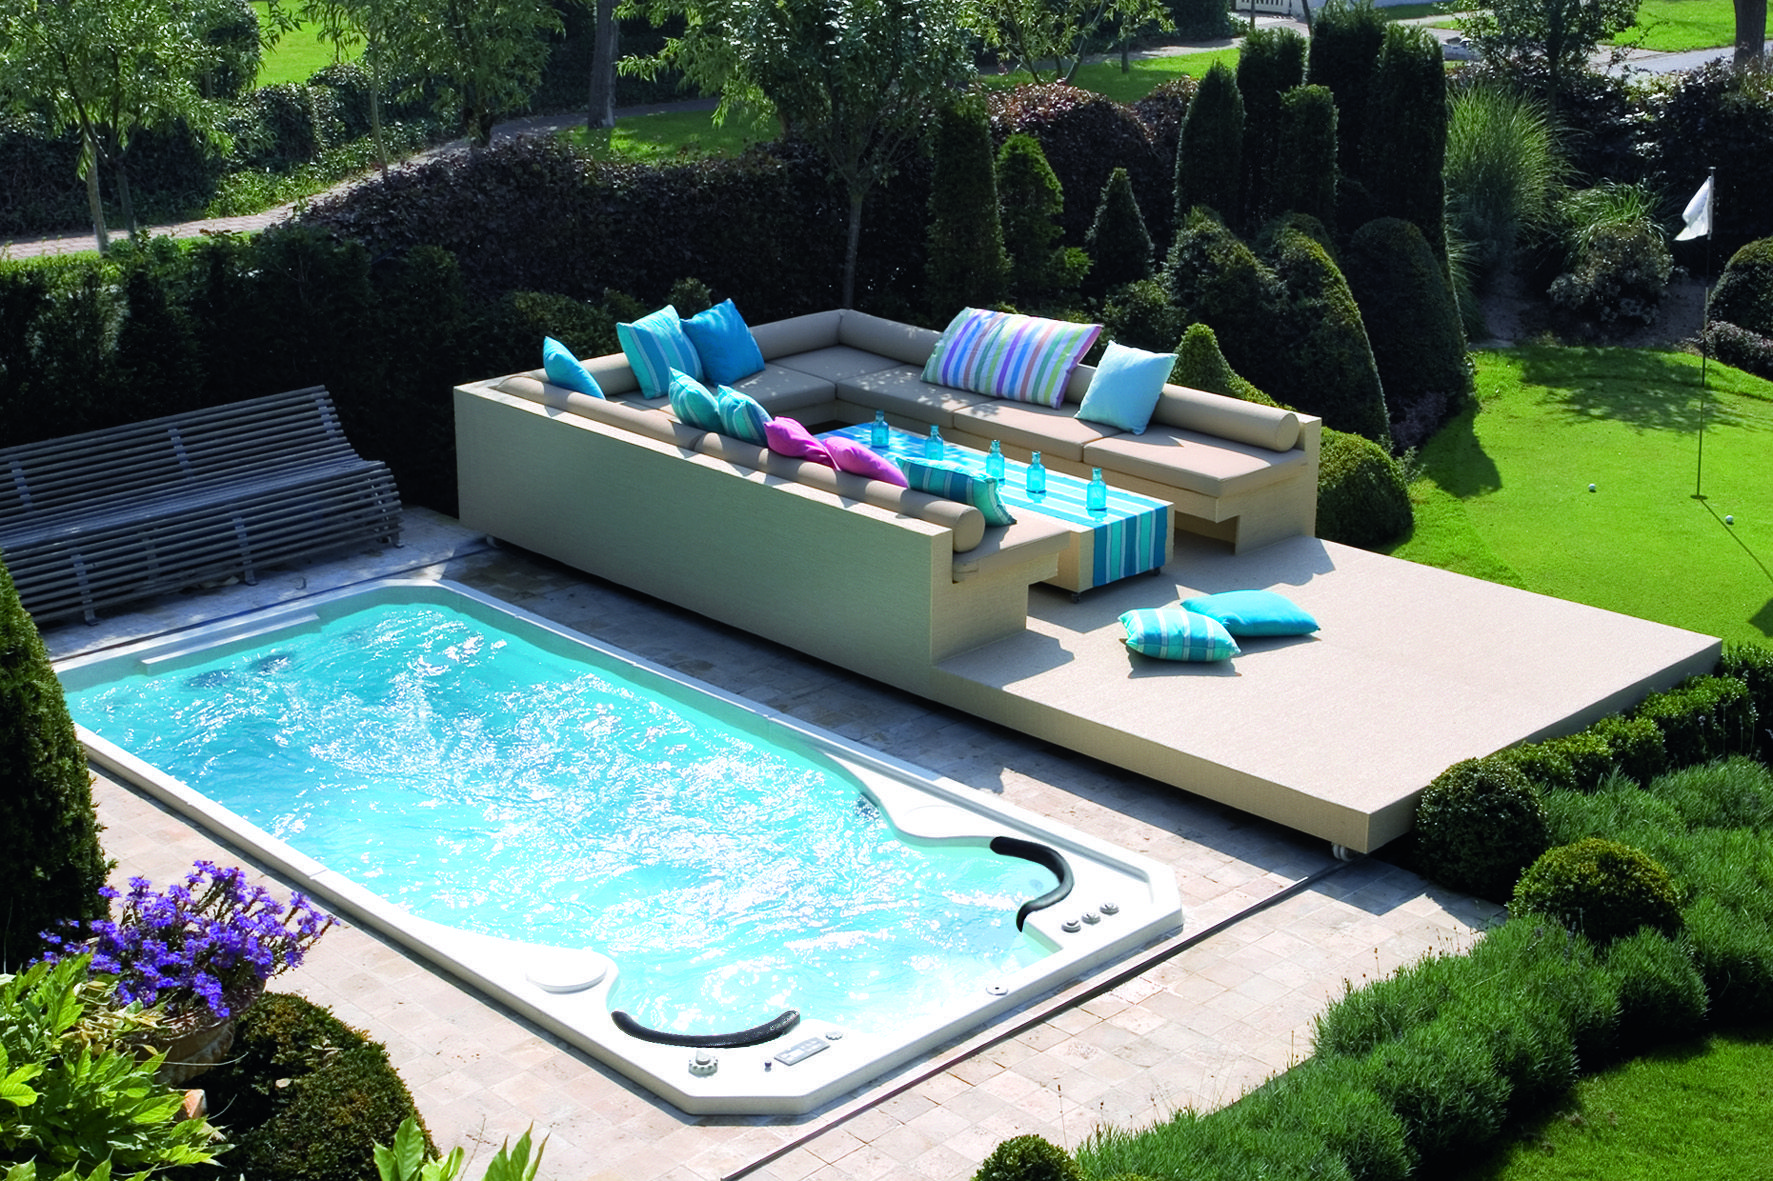 spa de nage acrylique clair azur aquaplay avec couverture terrasse amovile http www. Black Bedroom Furniture Sets. Home Design Ideas